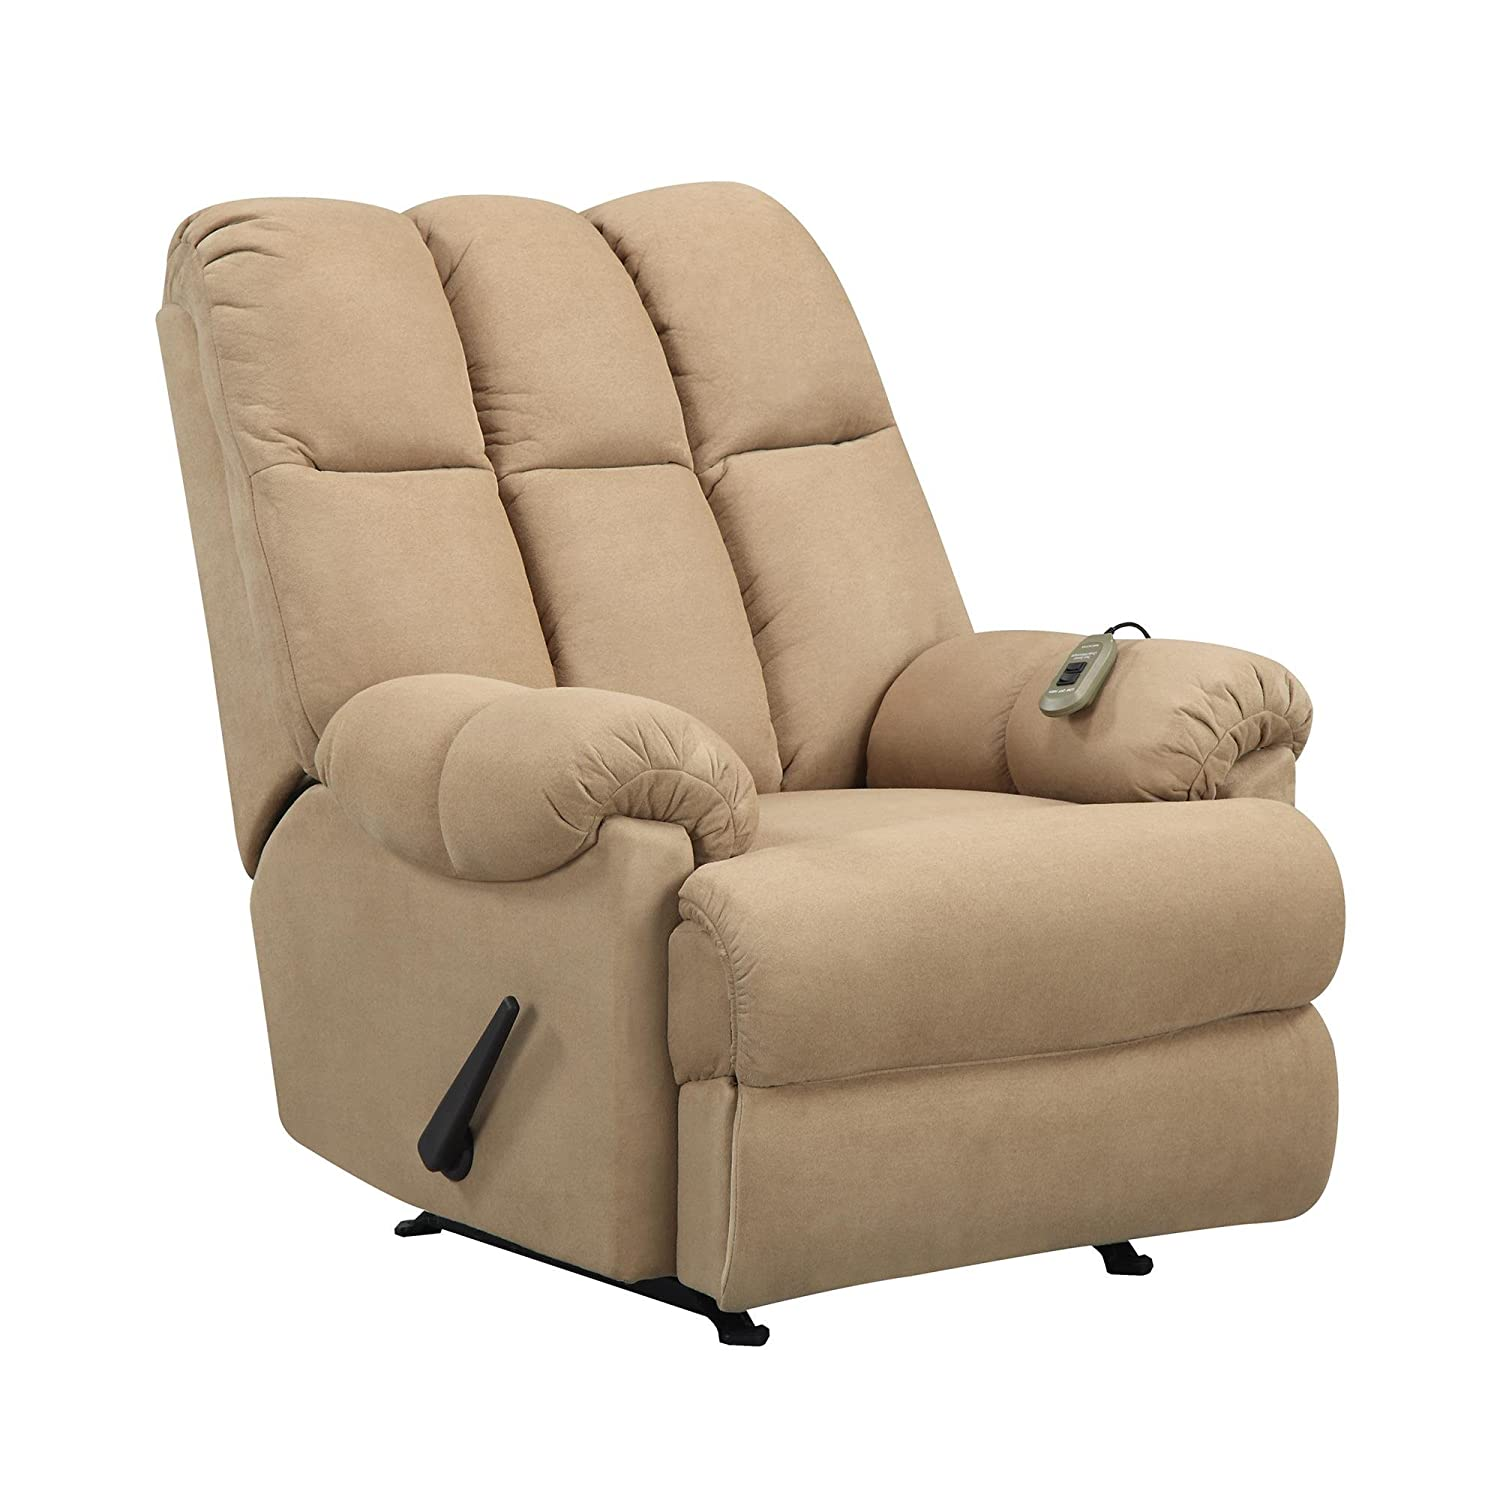 Amazon.com Dorel Living Padded Dual Massage Recliner Tan Kitchen u0026 Dining  sc 1 st  Amazon.com & Amazon.com: Dorel Living Padded Dual Massage Recliner Tan ... islam-shia.org